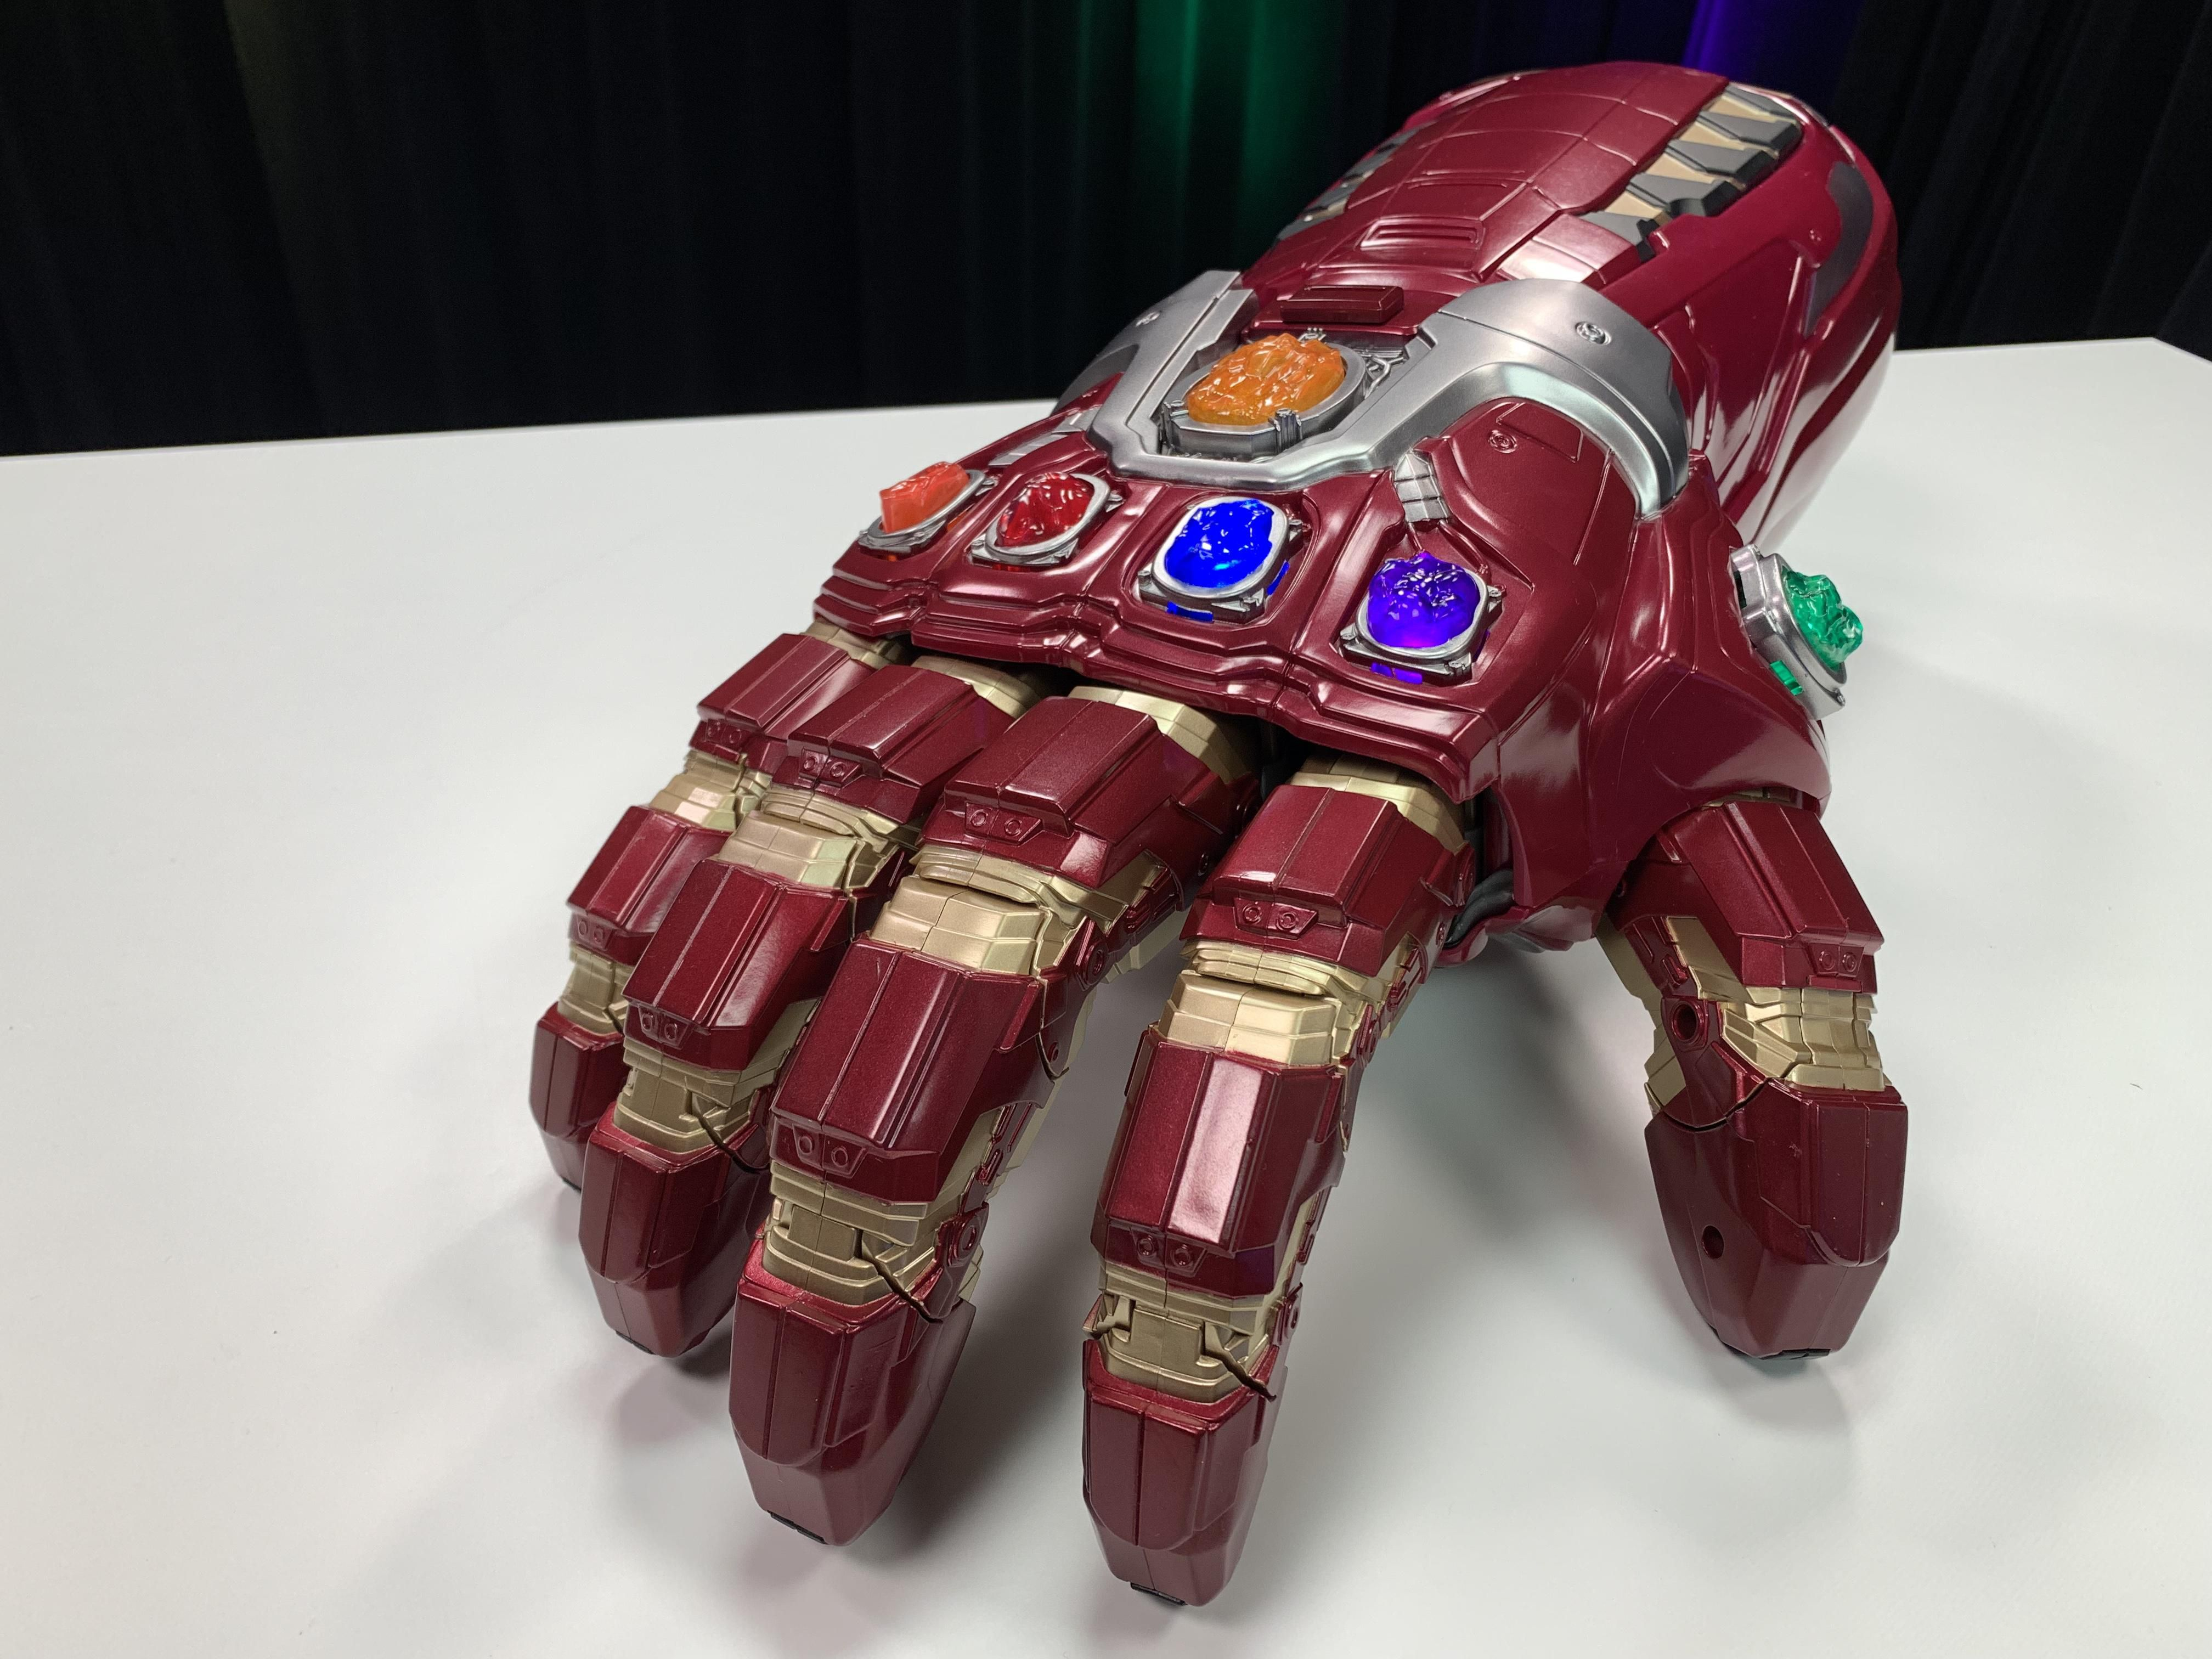 Avengers: Endgame Power Gauntlet is headed to your hands Avengers: Endgame Power Gauntlet is headed to your hands